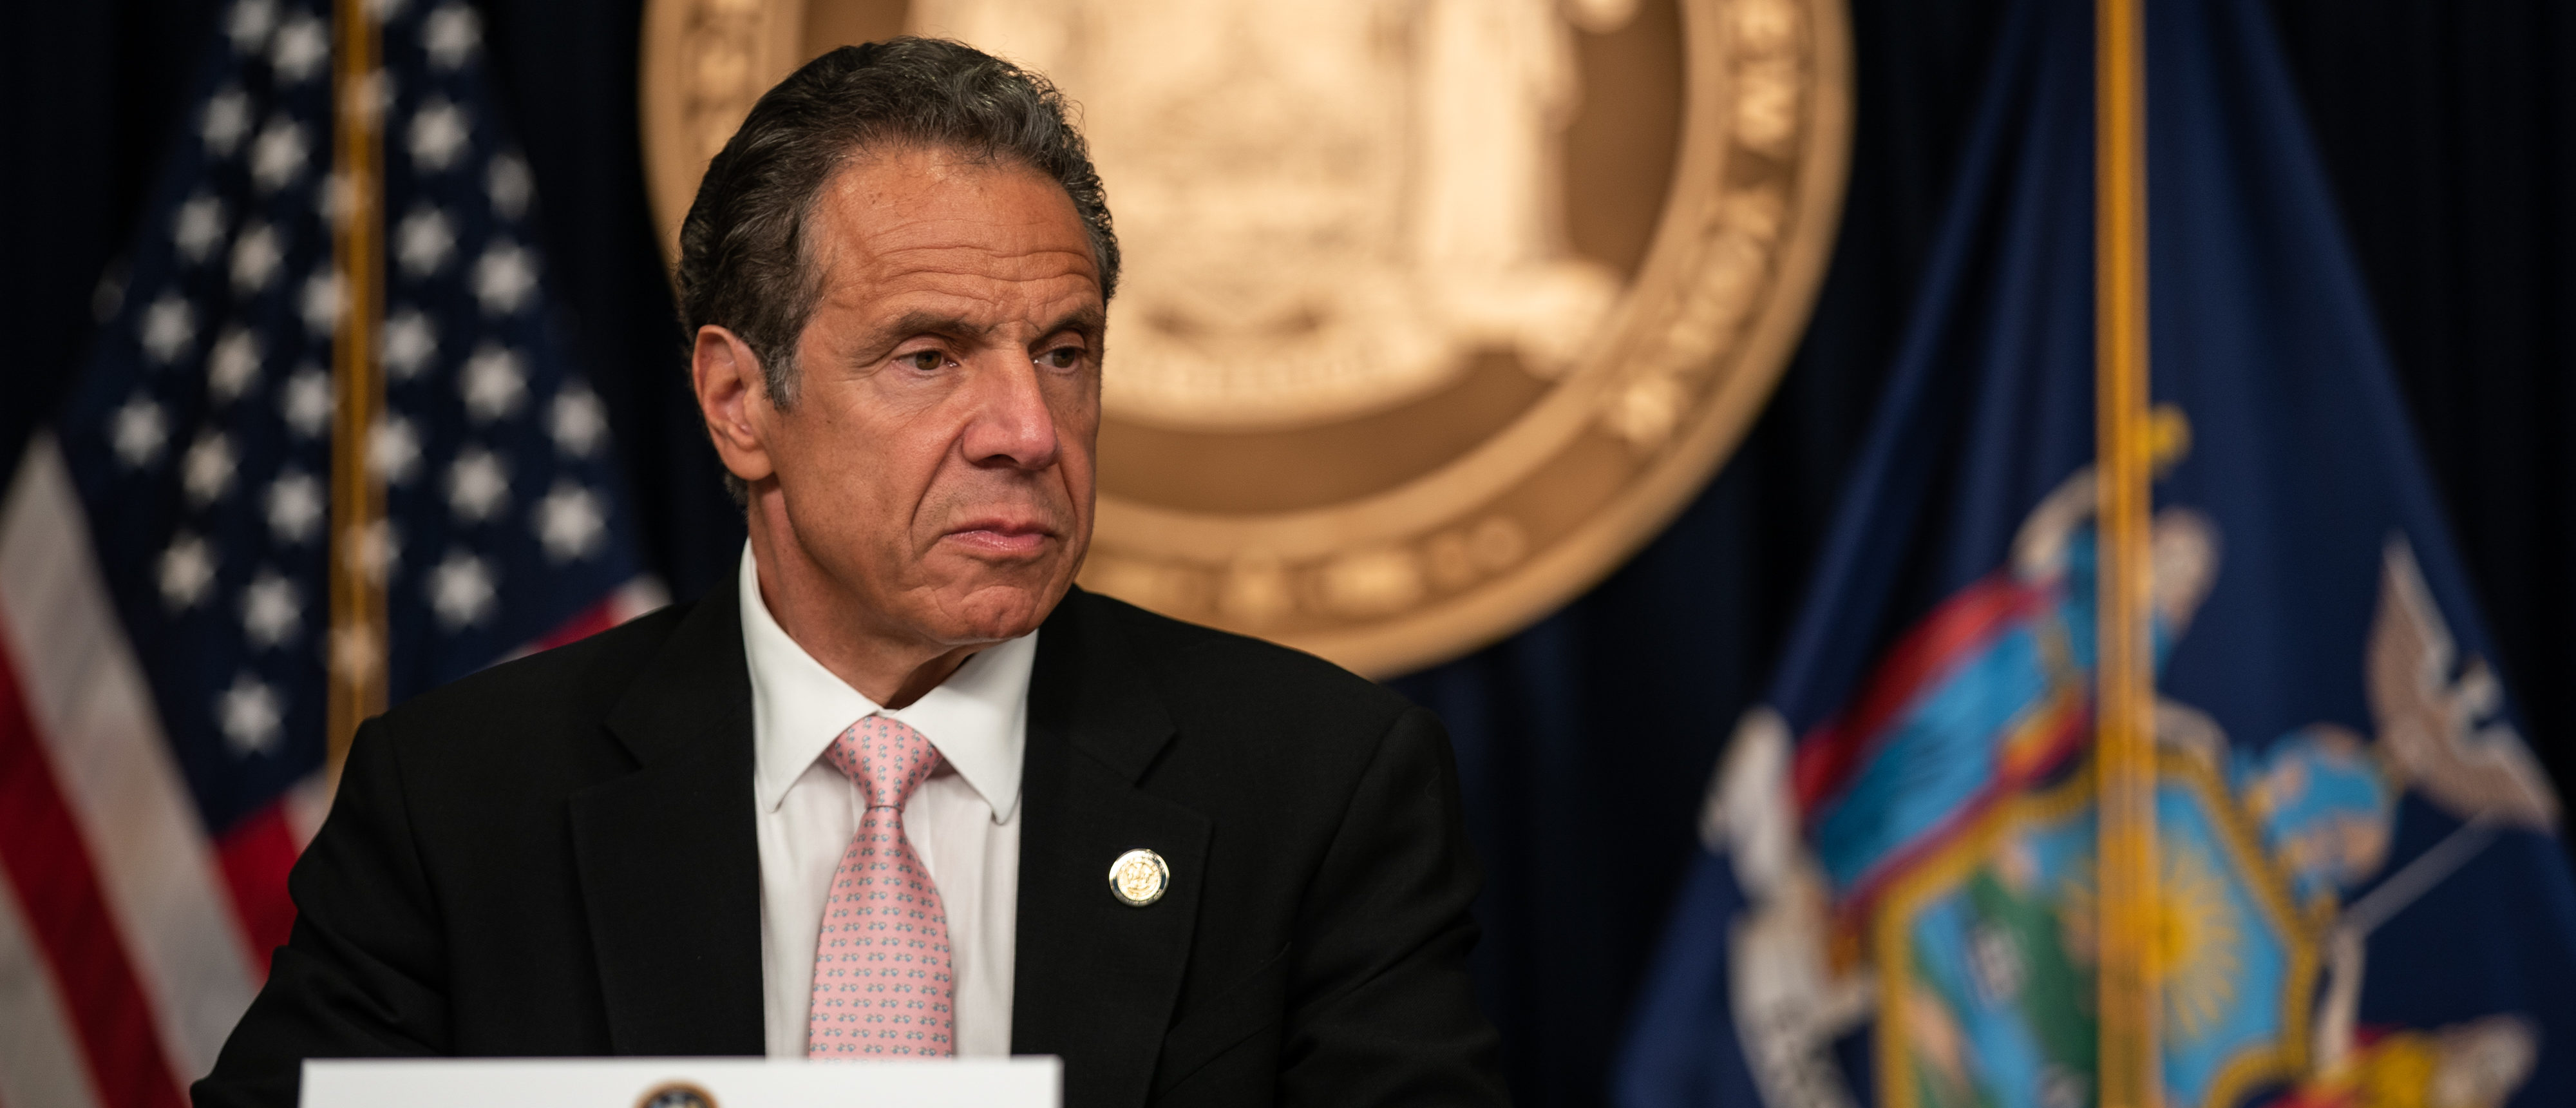 Federal Court Blocks Cuomo, De Blasio From Restricting Outdoor Worship After They Condoned Protests